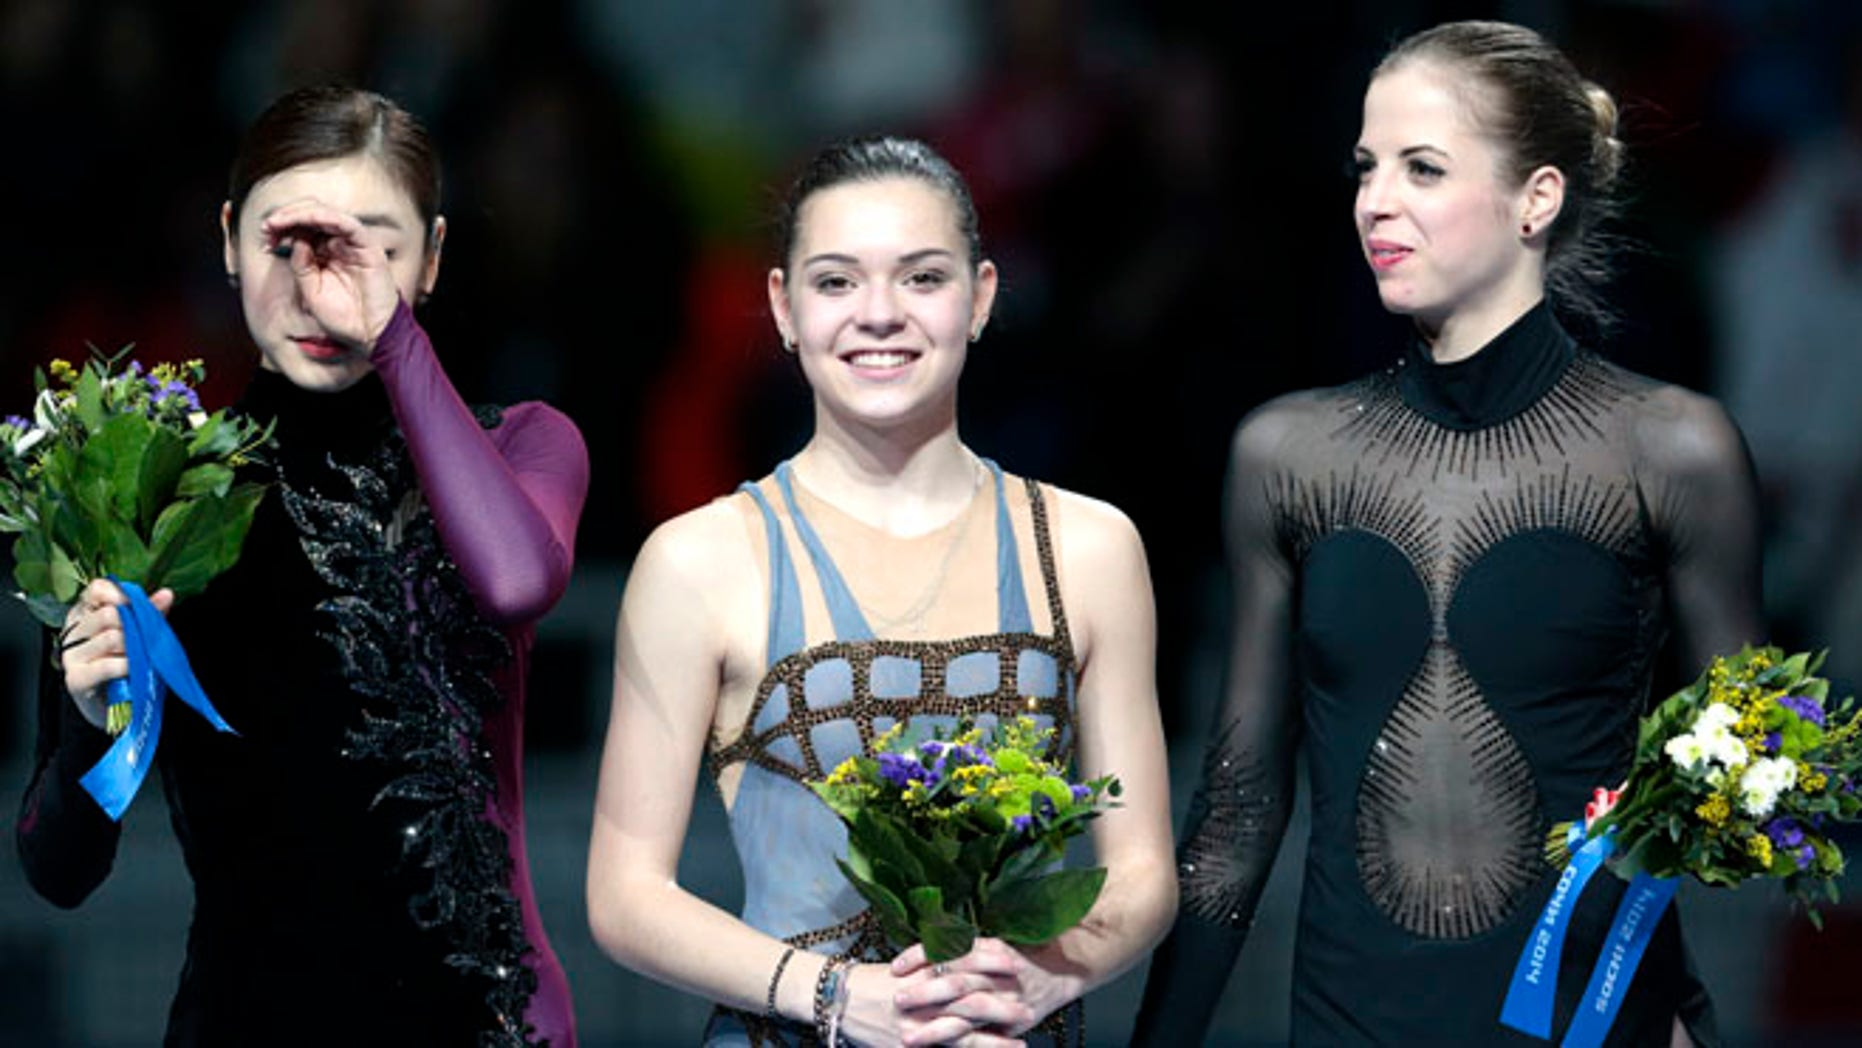 Feb. 20, 2014: Adelina Sotnikova of Russia, centre, Yuna Kim of South Korea, left, and Carolina Kostner of Italy stand on the podium during the flower ceremony for the women's free skate figure skating final at the Iceberg Skating Palace during the 2014 Winter Olympics in Sochi, Russia. Sotnikova placed first, followed by Kim and Kostner.